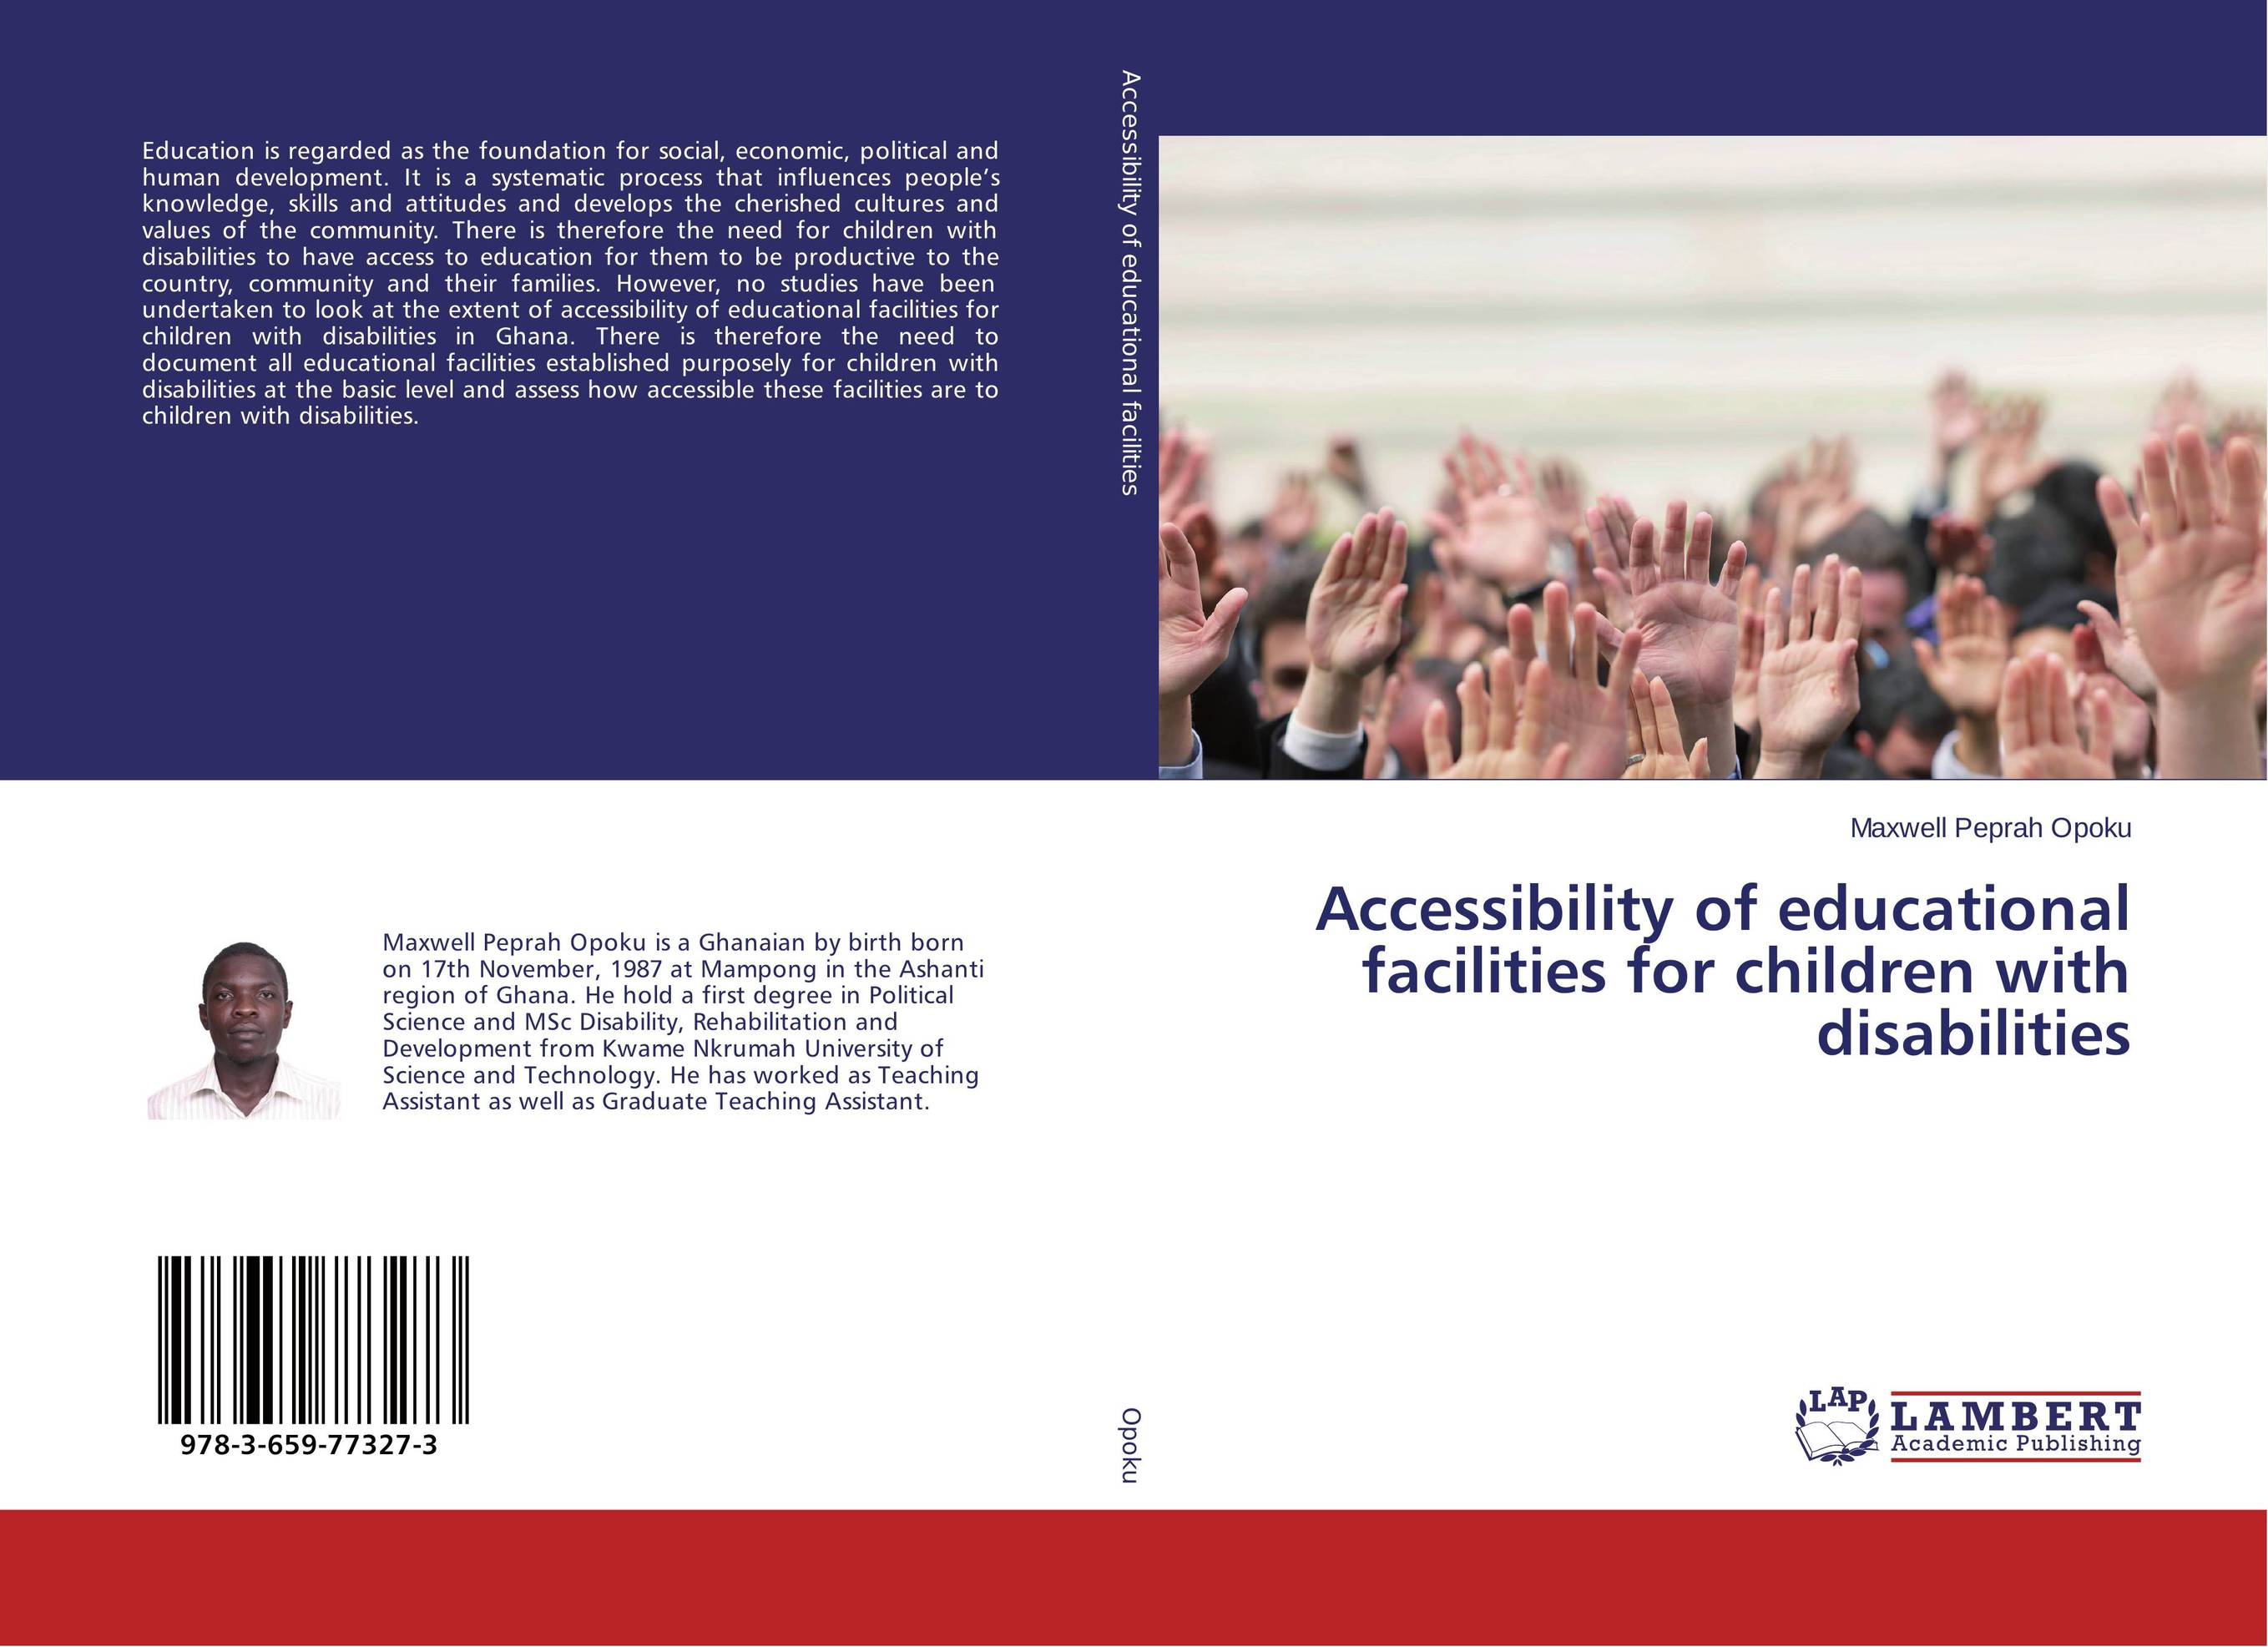 Accessibility of educational facilities for children with disabilities катушка для спиннинга agriculture fisheries and magic with disabilities 13